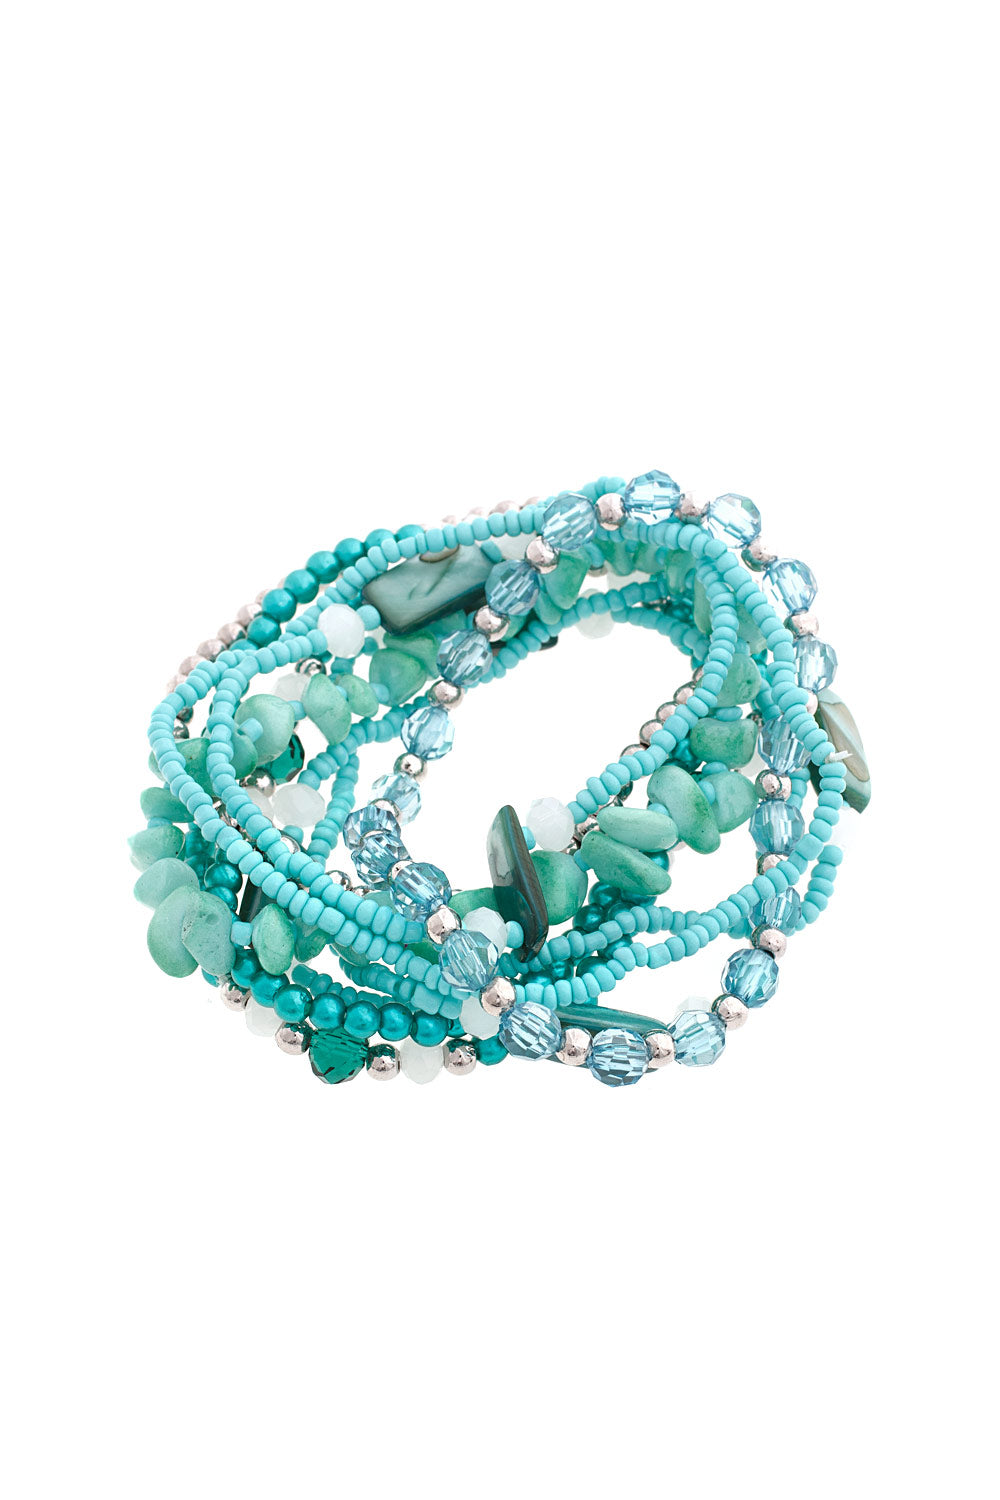 Type 2 Mystic Mermaid Bracelet Set